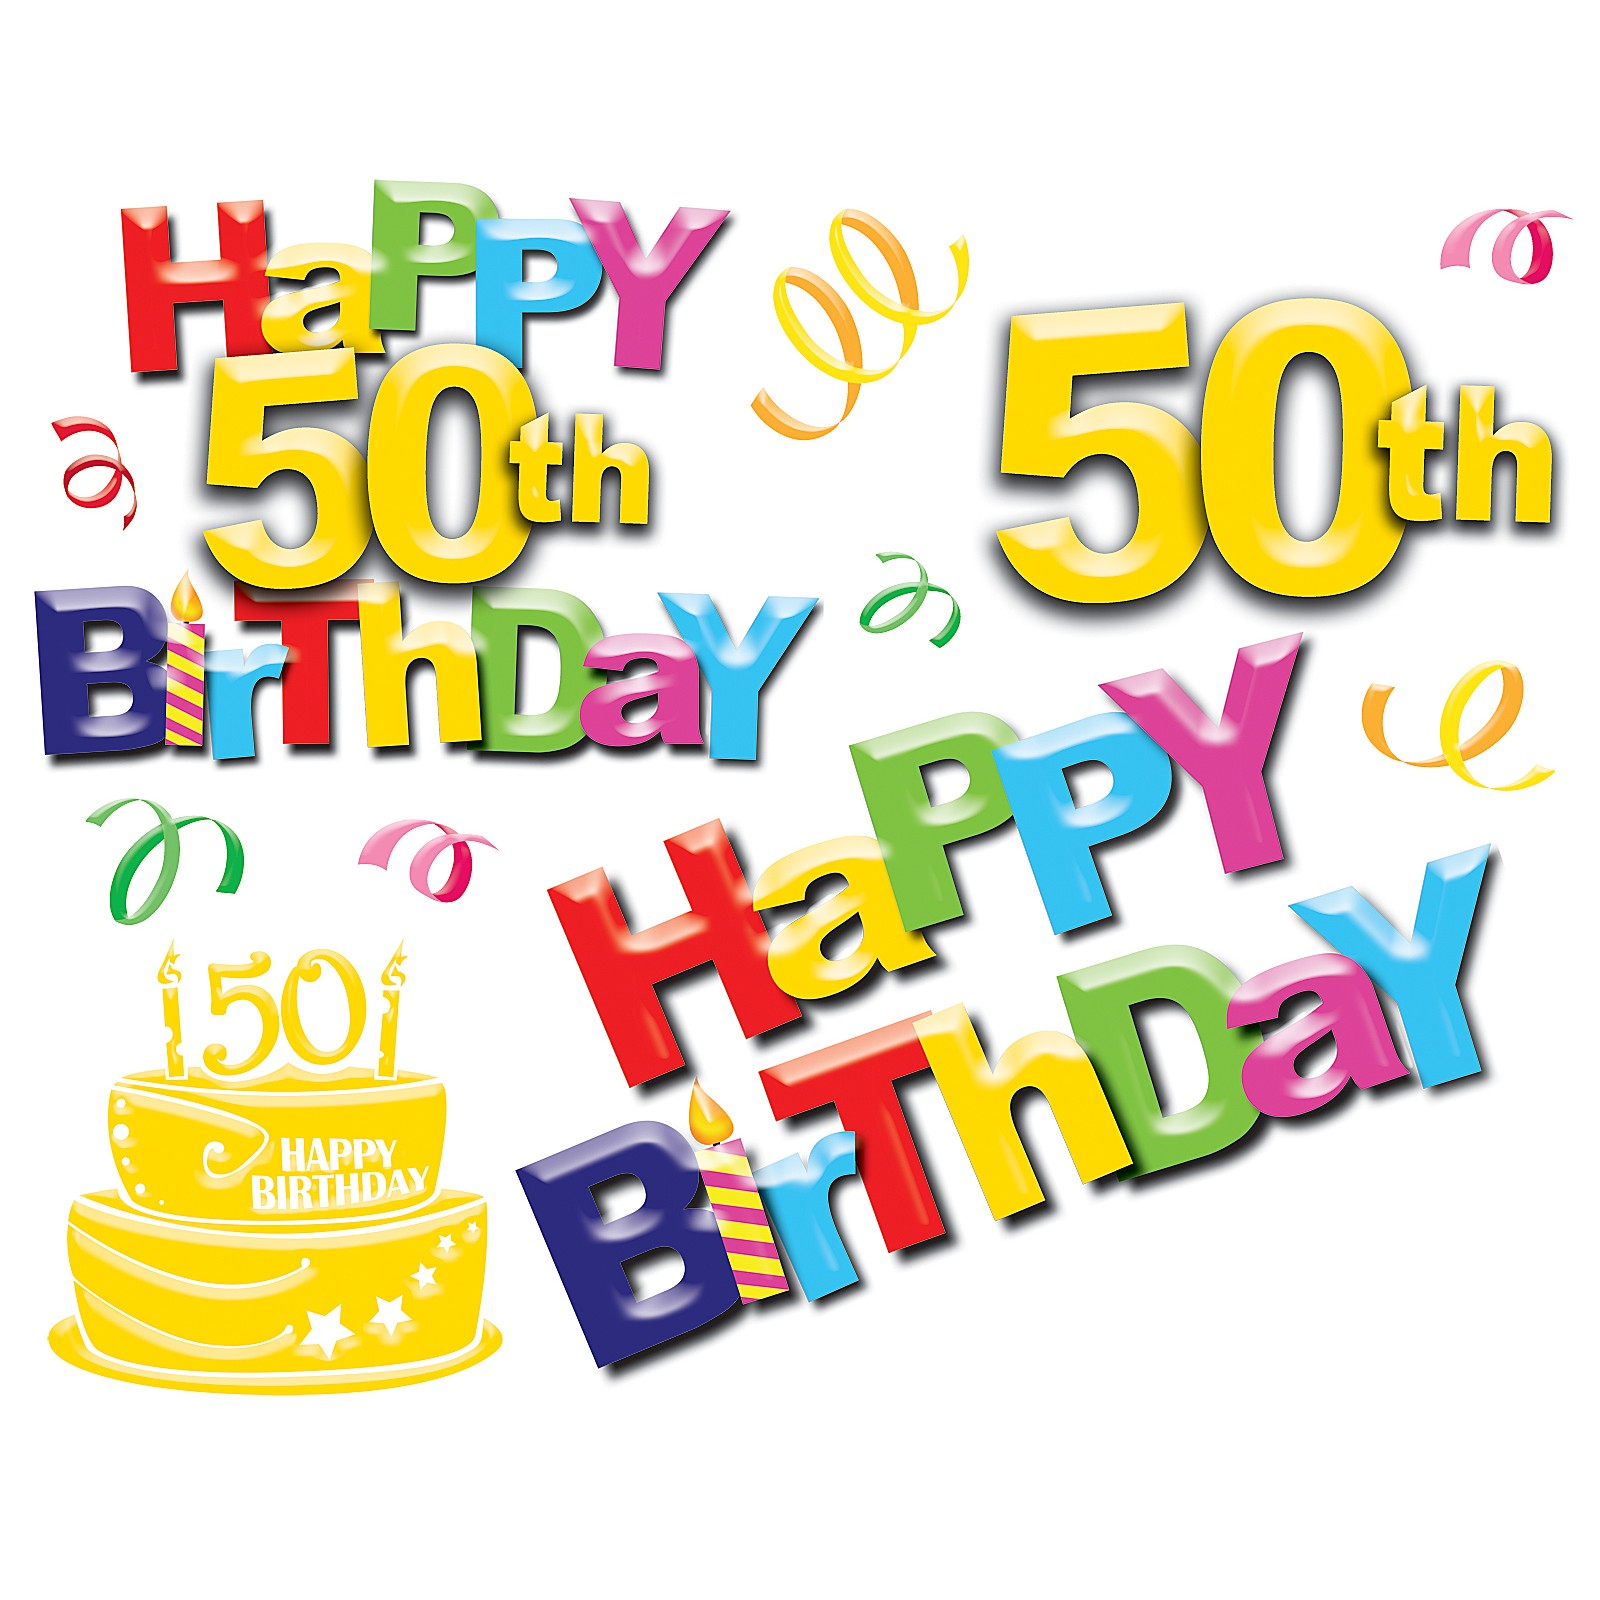 funny birthday banner quotes ; Happy-50th-birthday-Wishes-1